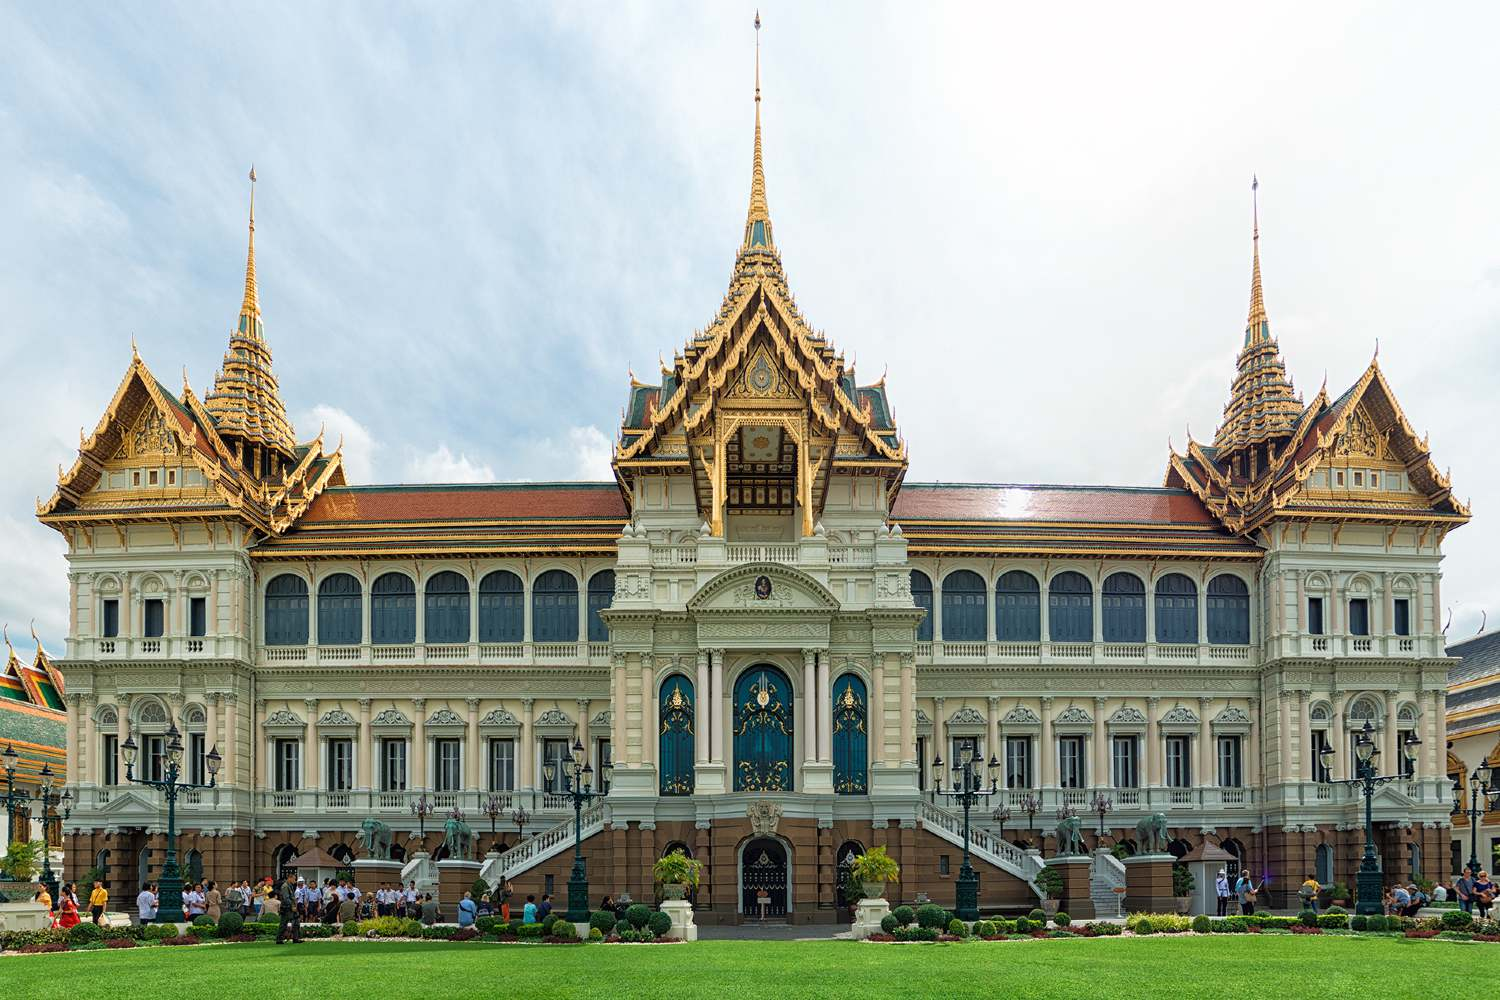 De Great Chakri Palace on the grounds of the Grand Palace Bangkok, Thailand